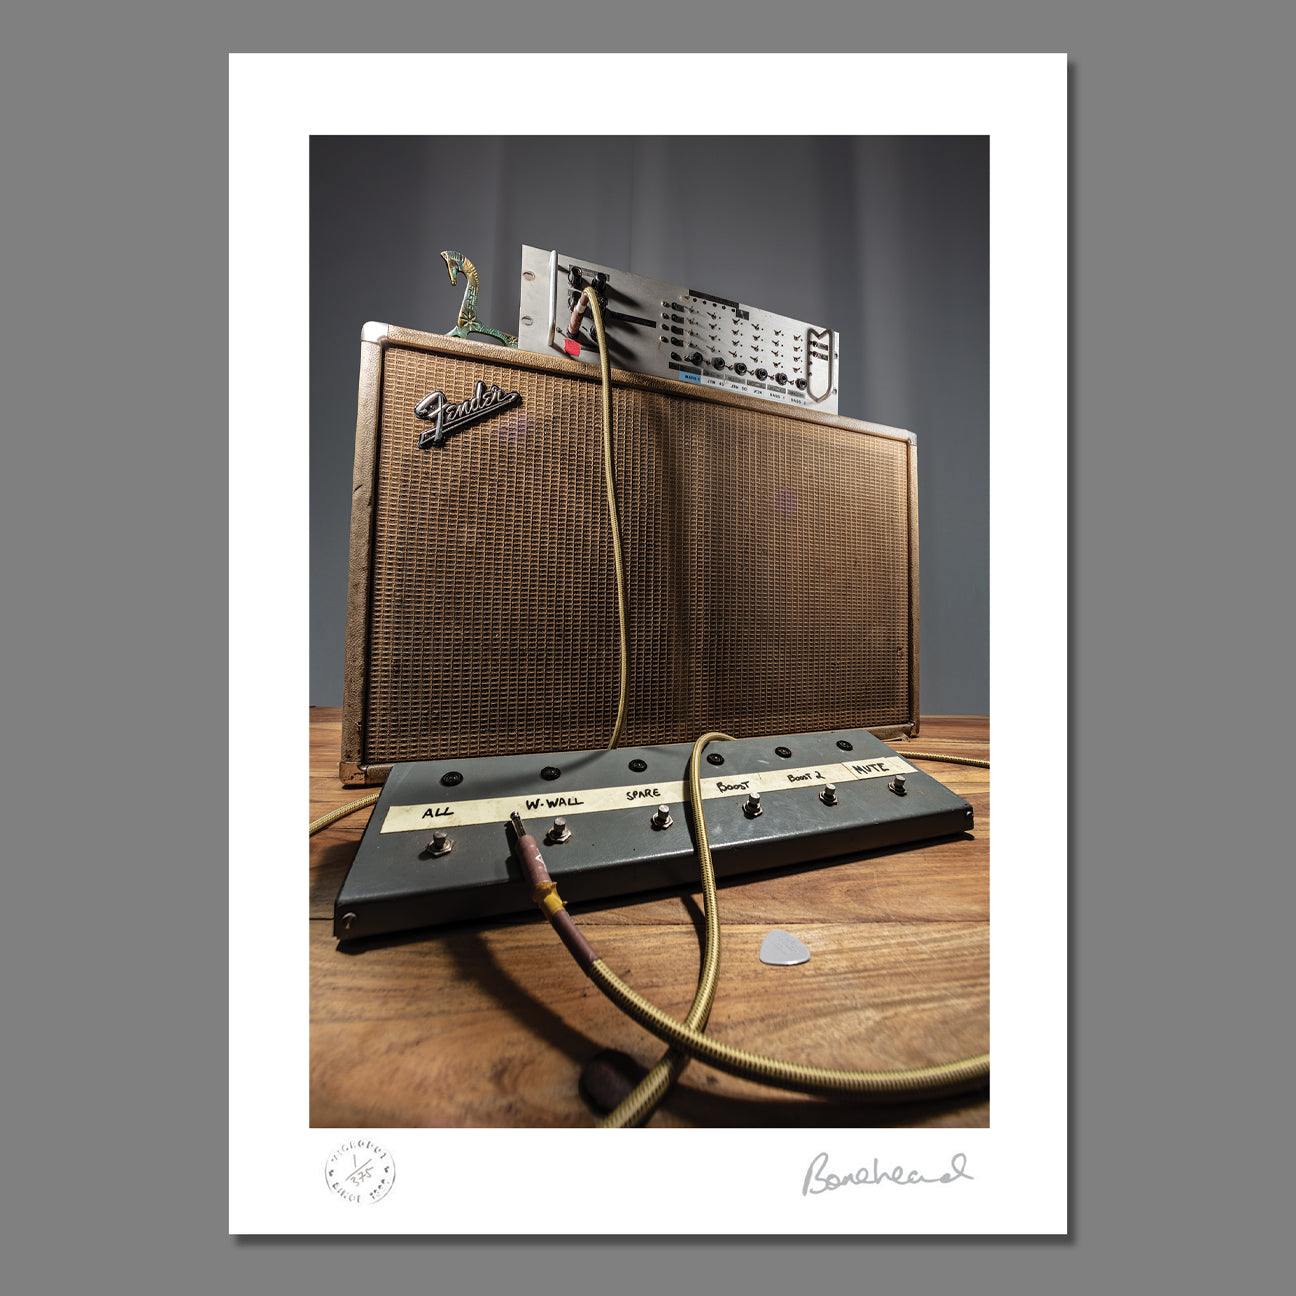 Bonehead Signed Wall Of Sound Limited Edition Print